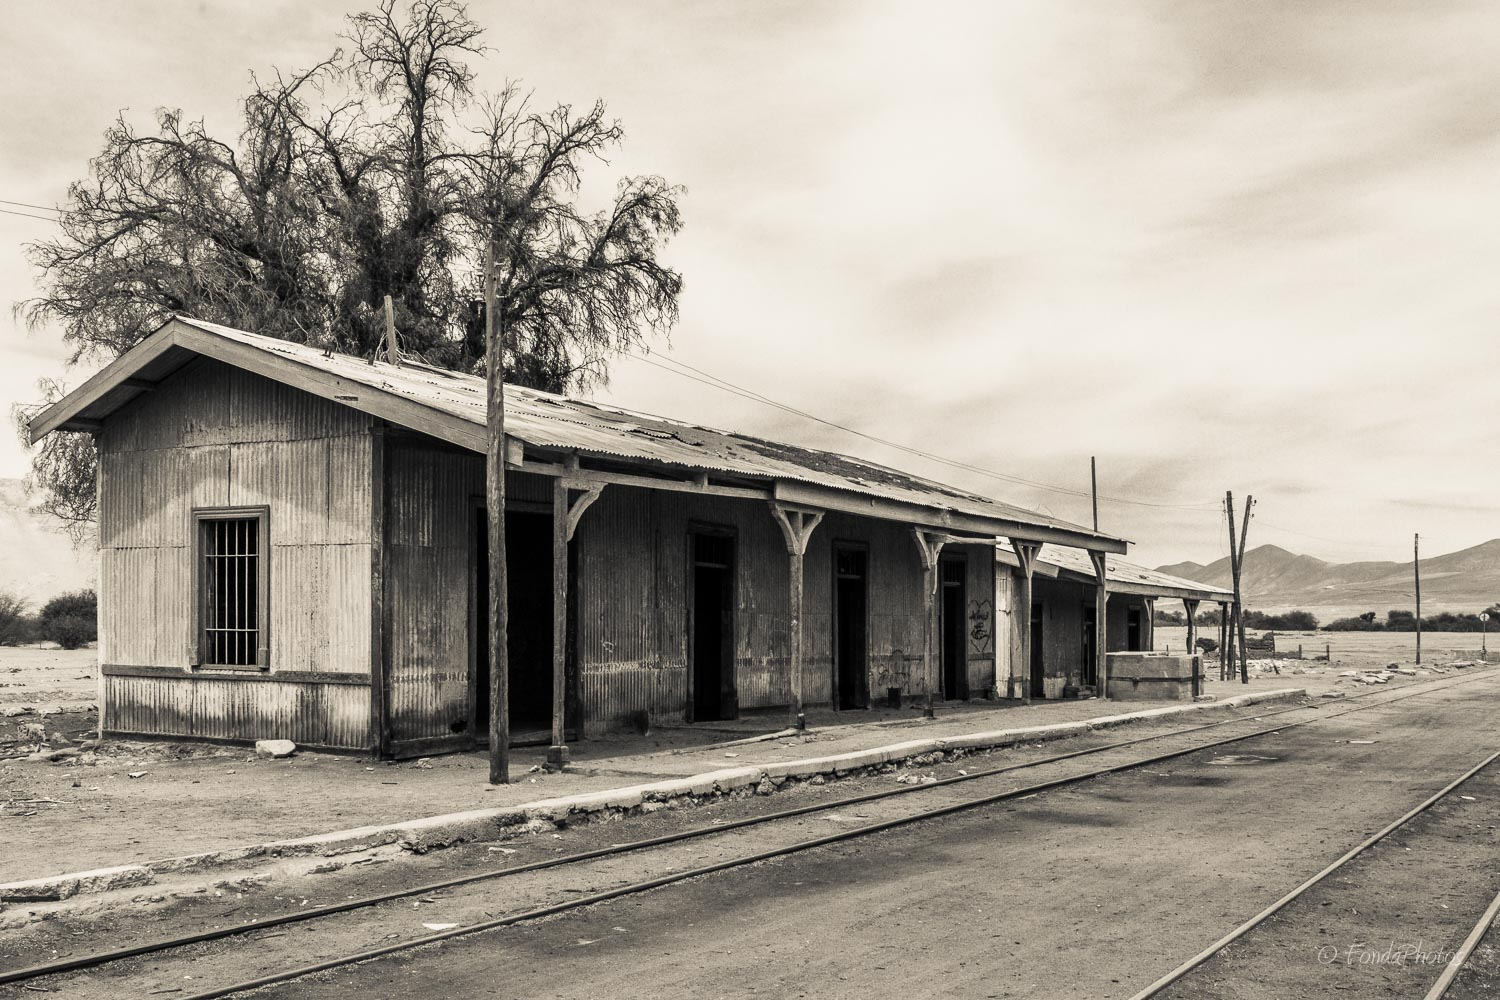 Abandonned train station, Quillagua